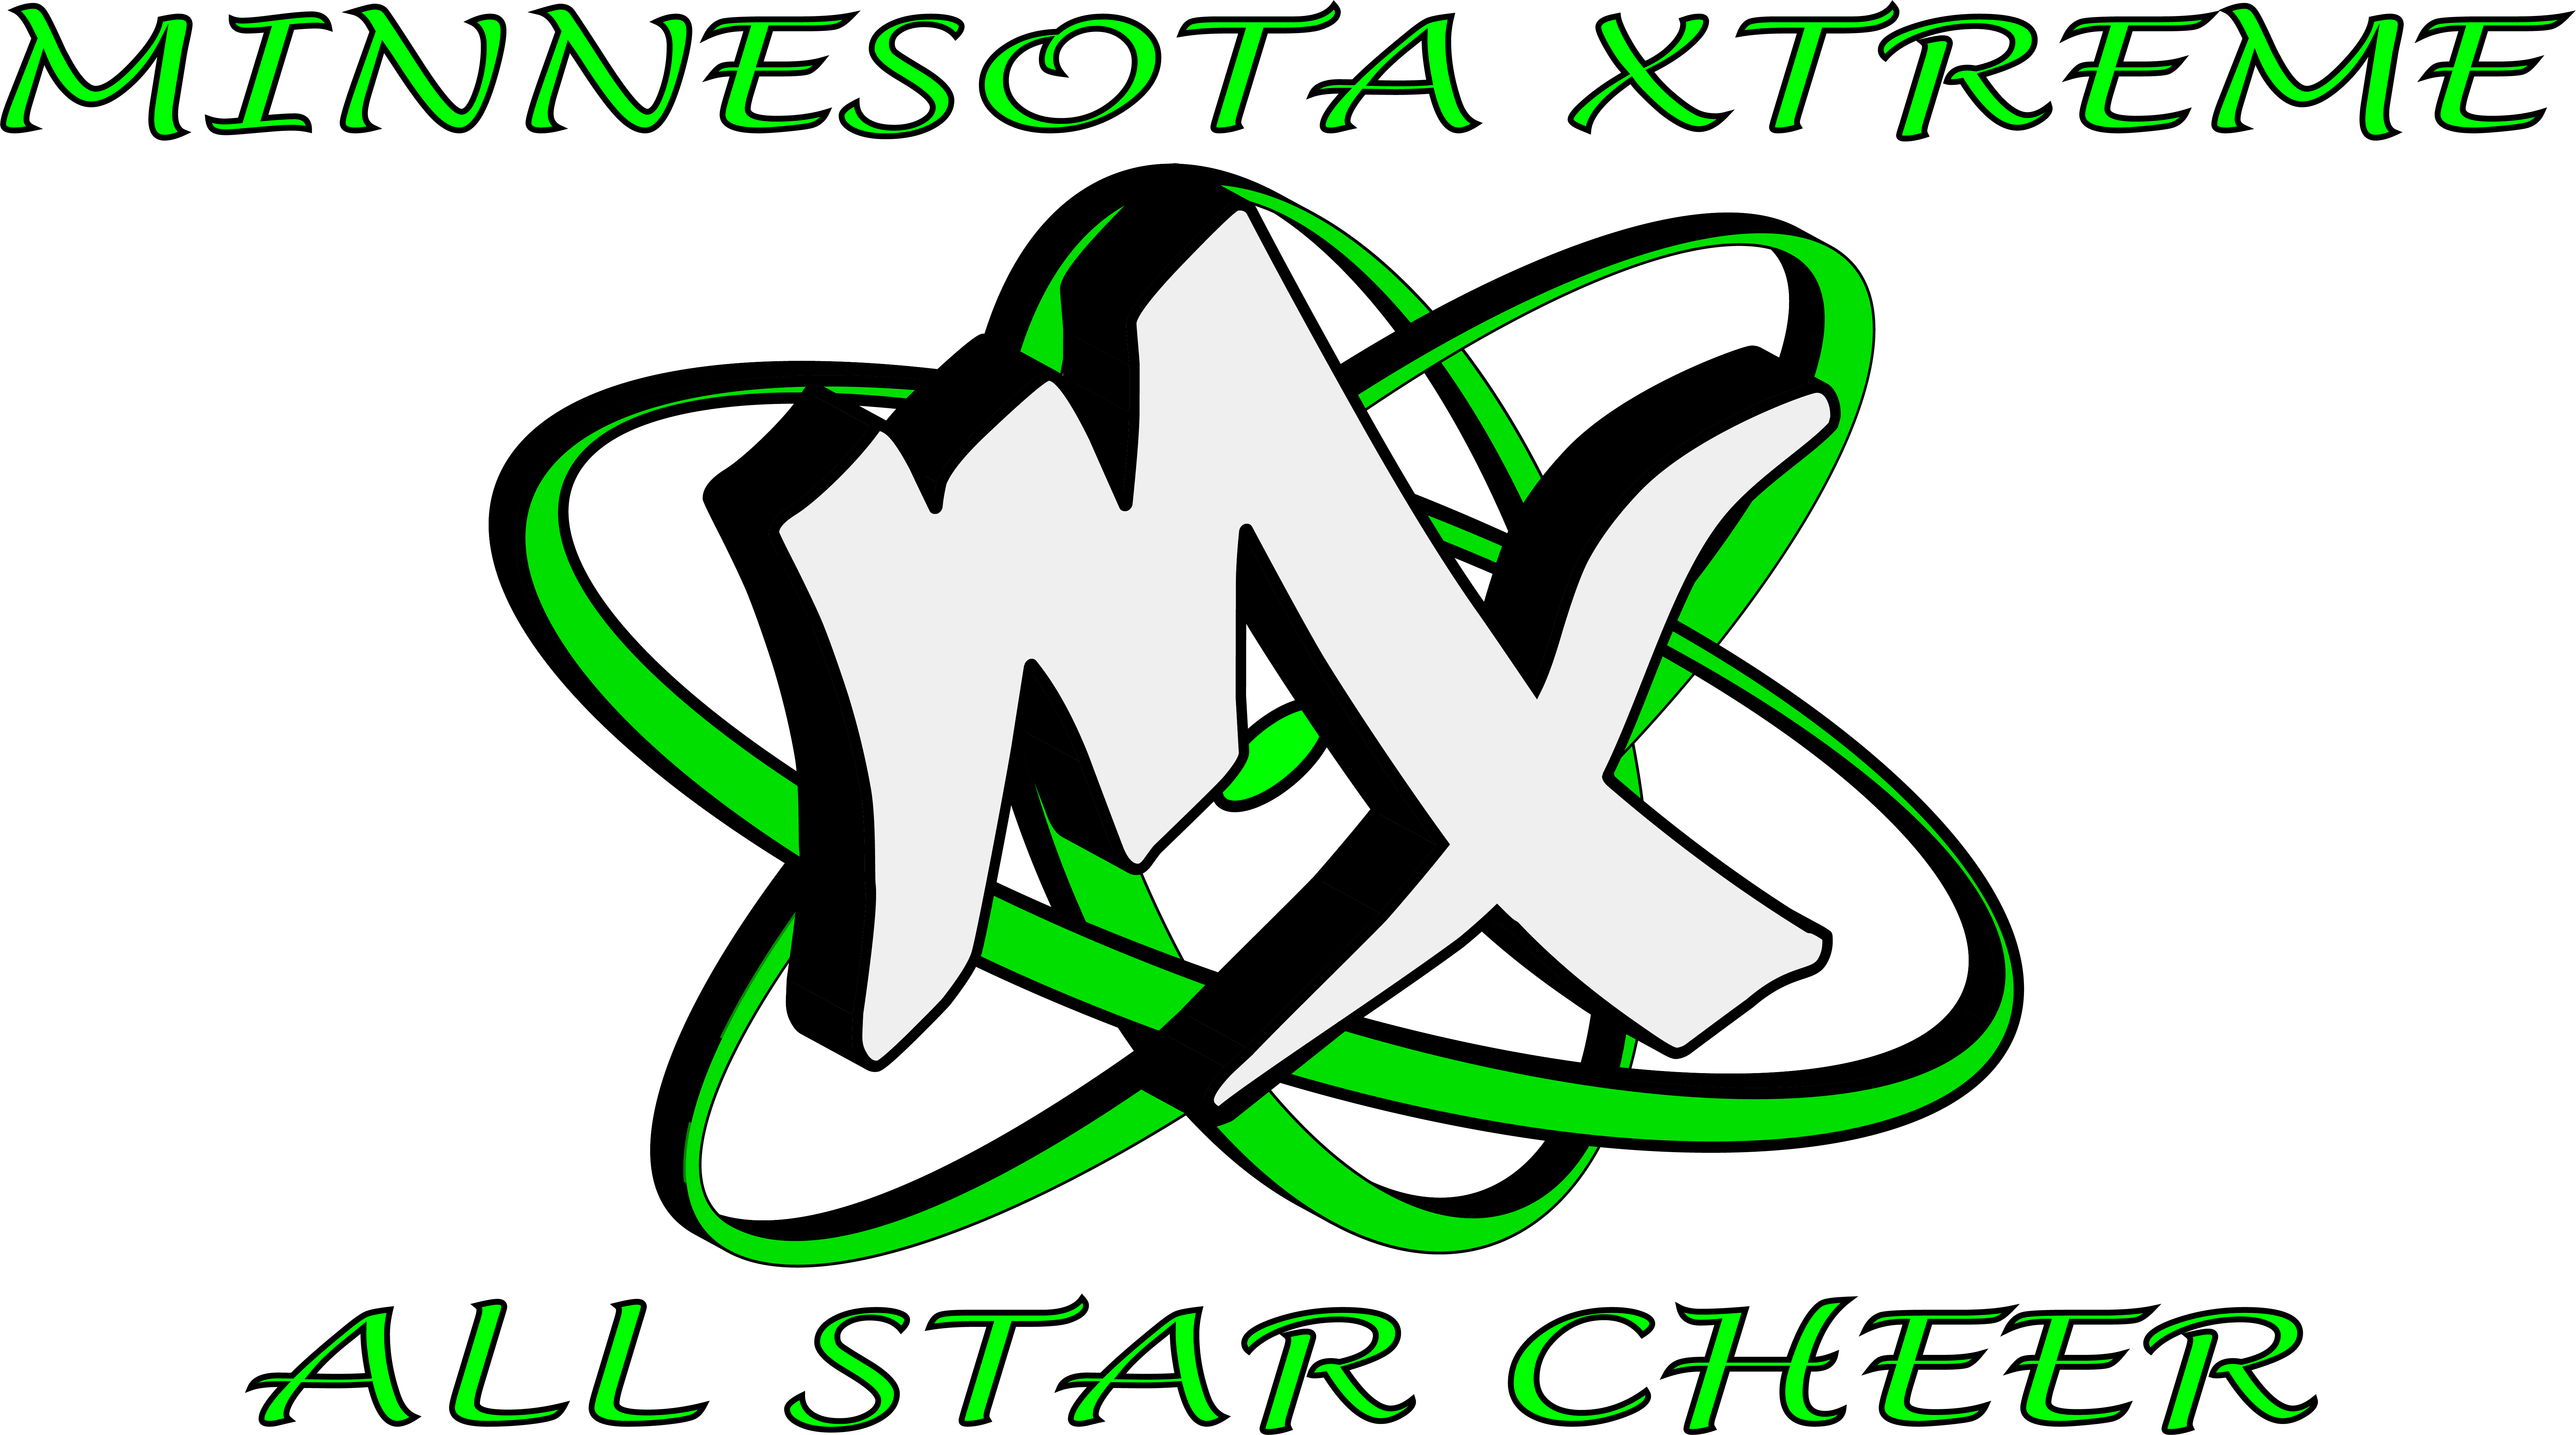 Minnesota Xtreme All Star Cheer